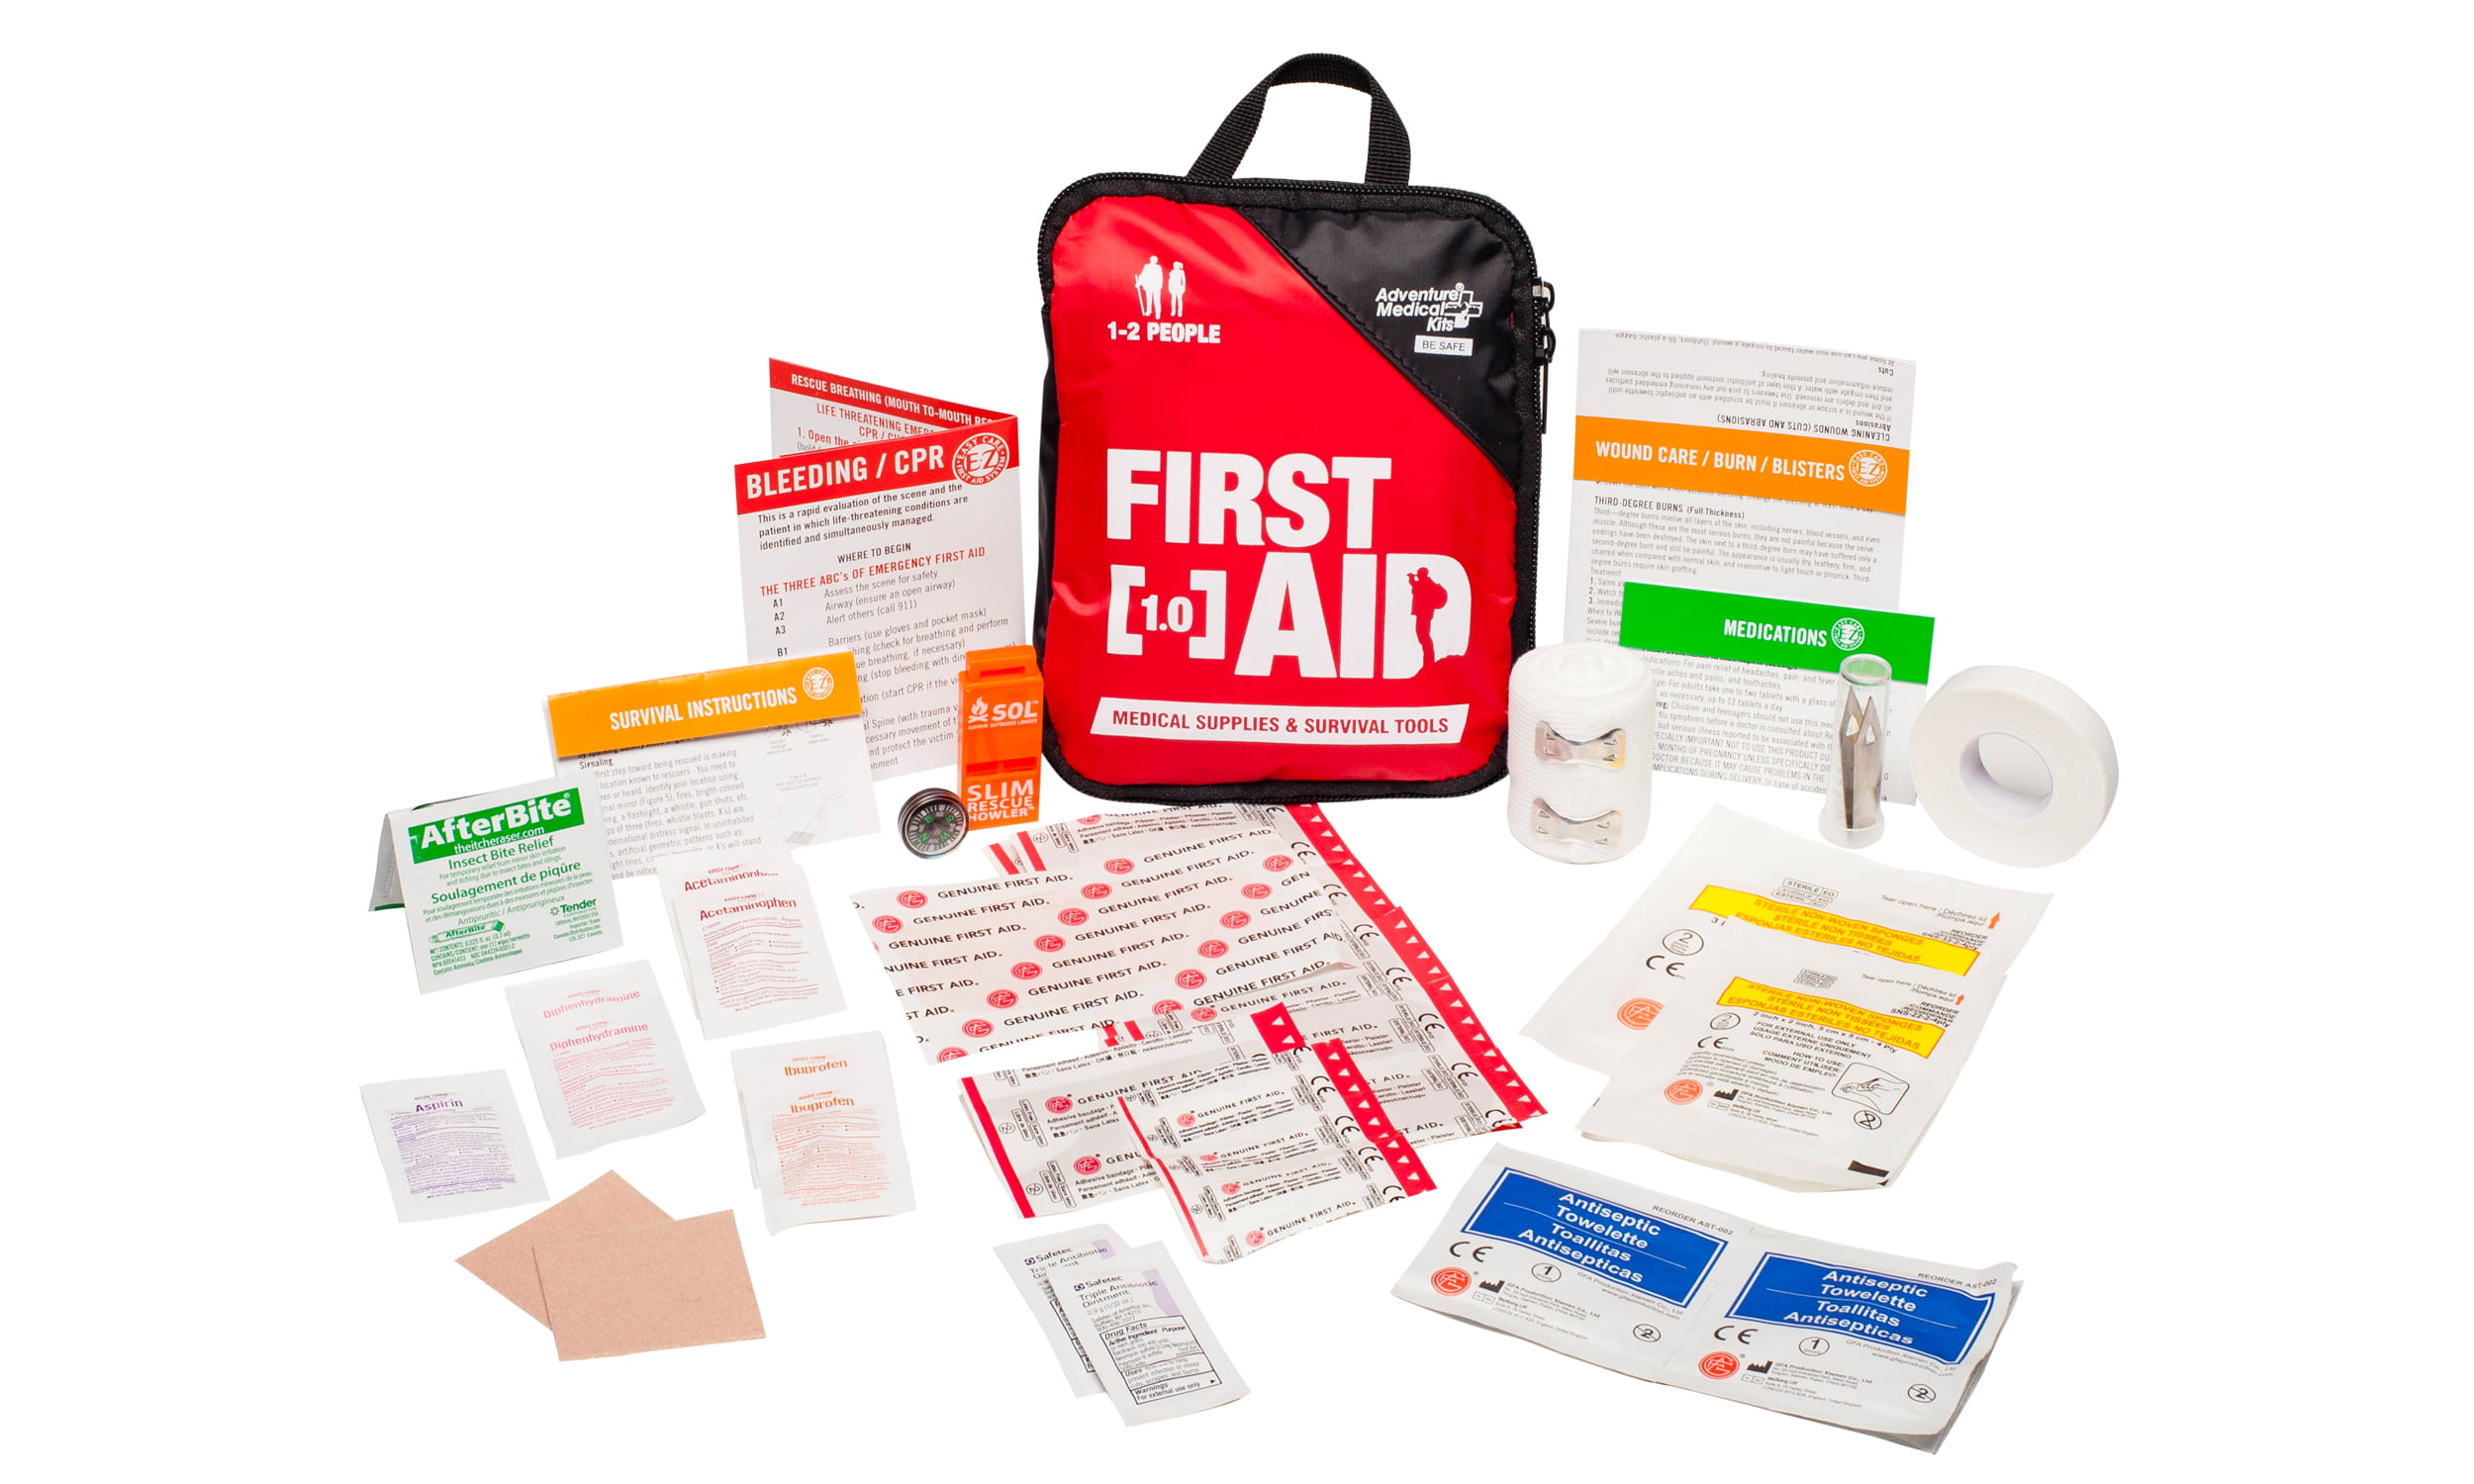 Adventure Medical Kits, Adventure First Aid 1.0 First Aid Kit by Tender Corporation